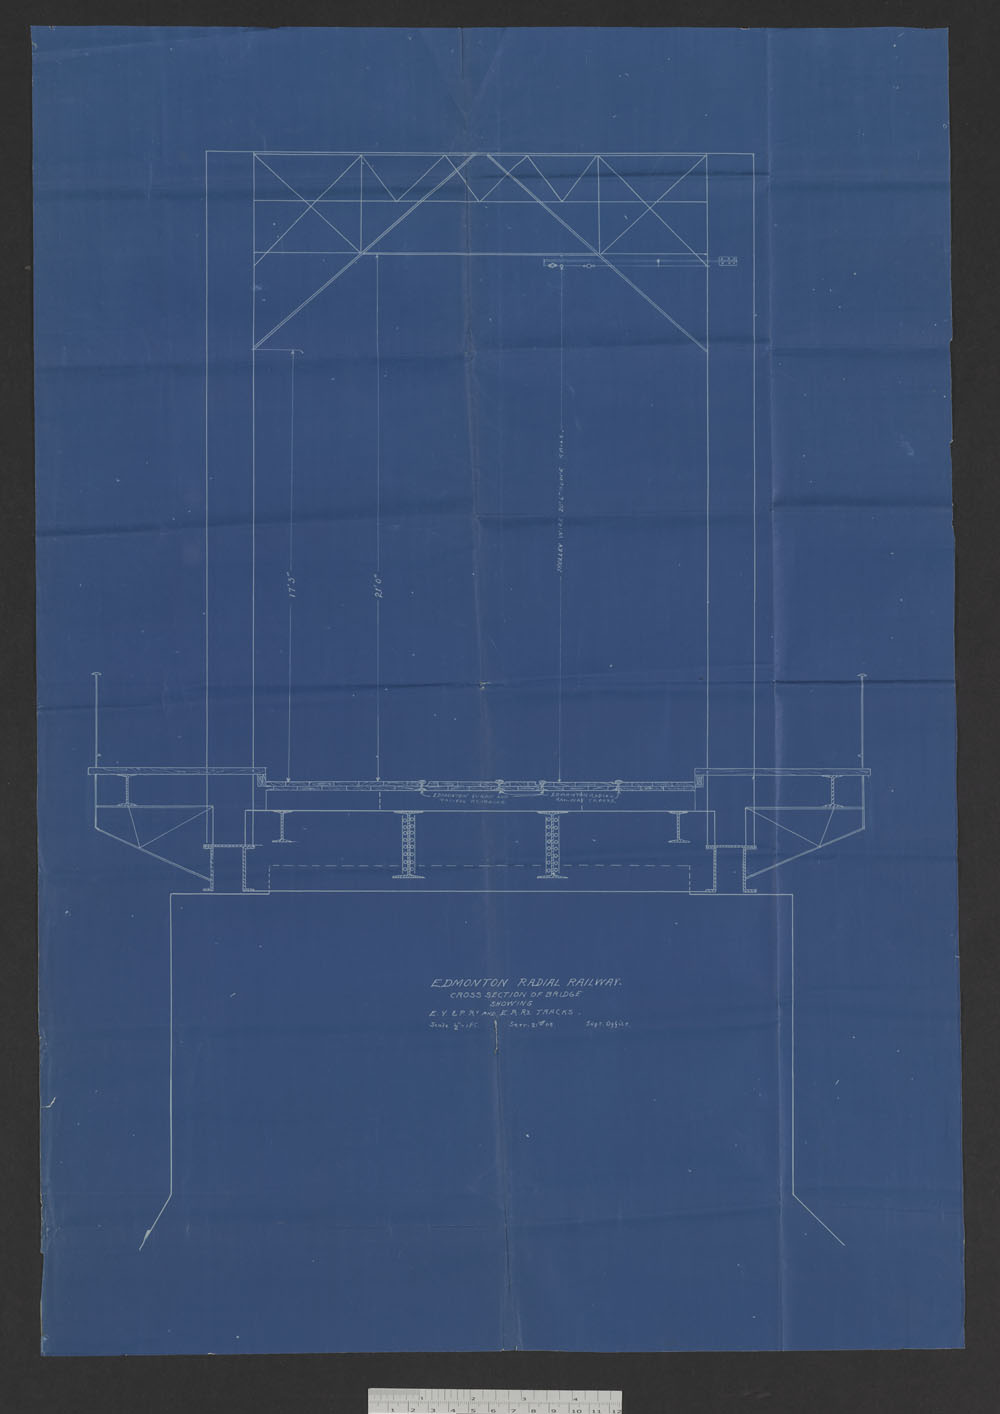 Edmonton Radial Railway - Plan and section showing tracks. (item 10)